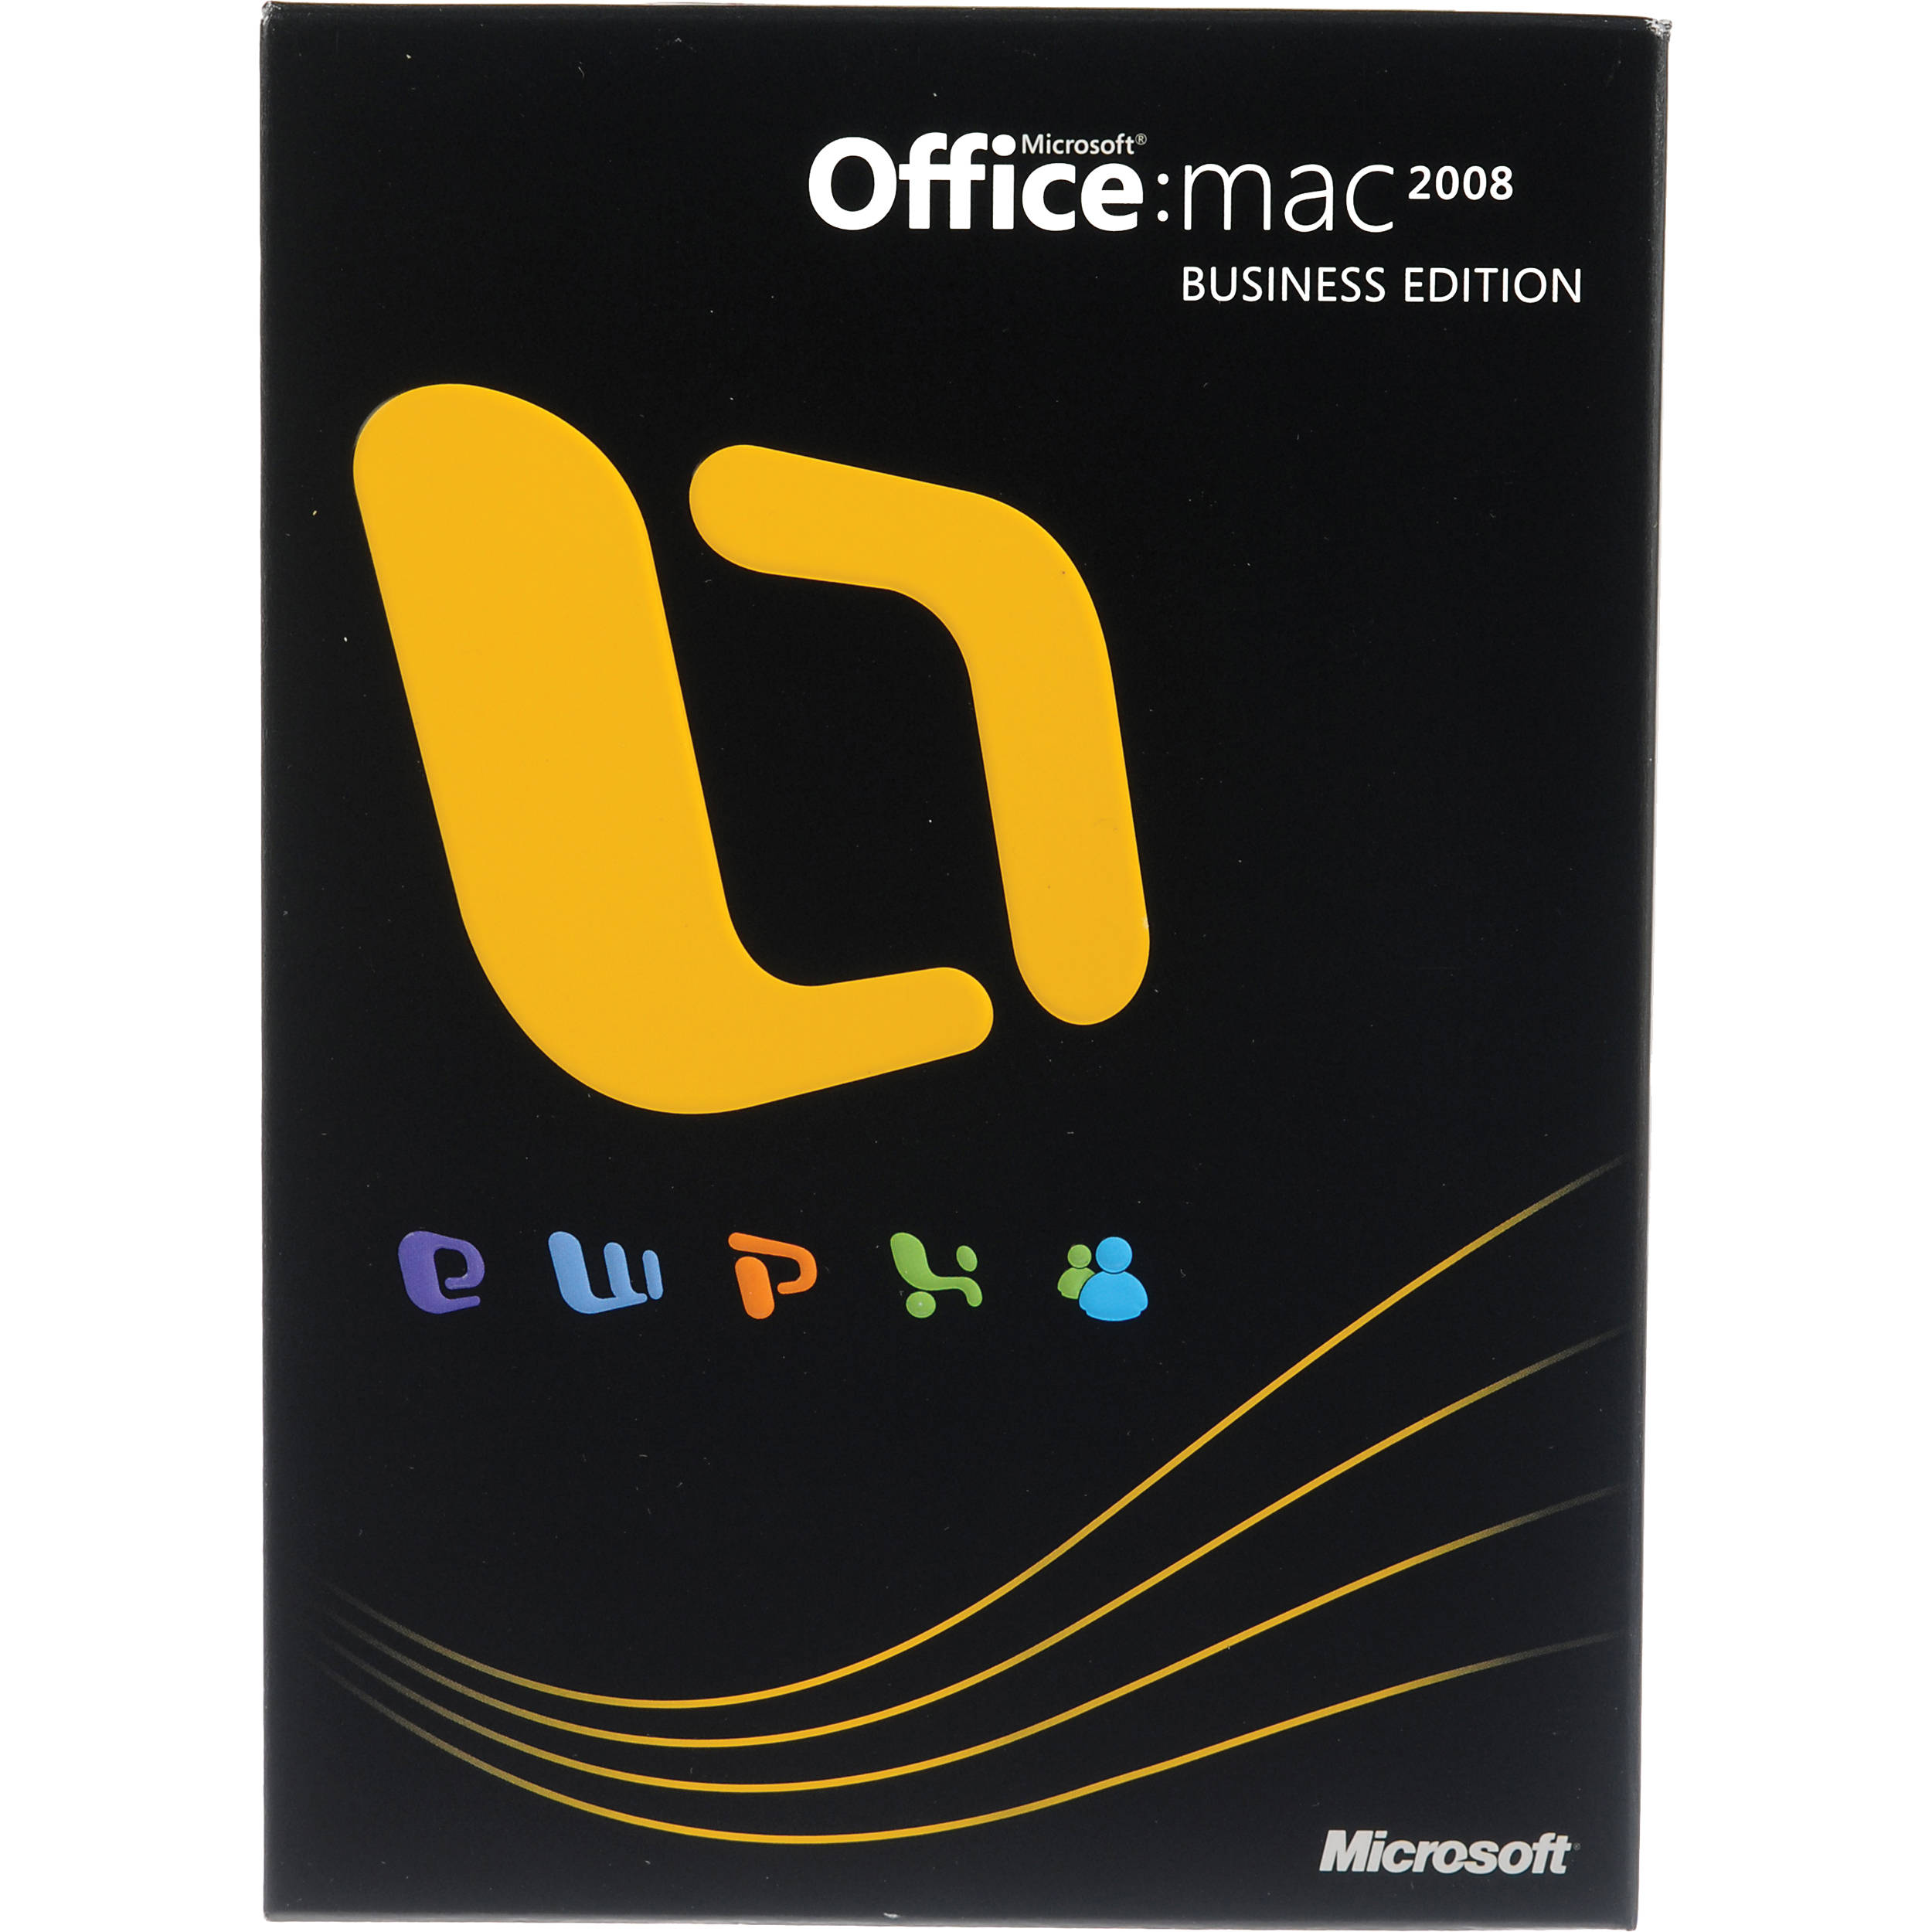 microsoft office 2008 for mac business edition